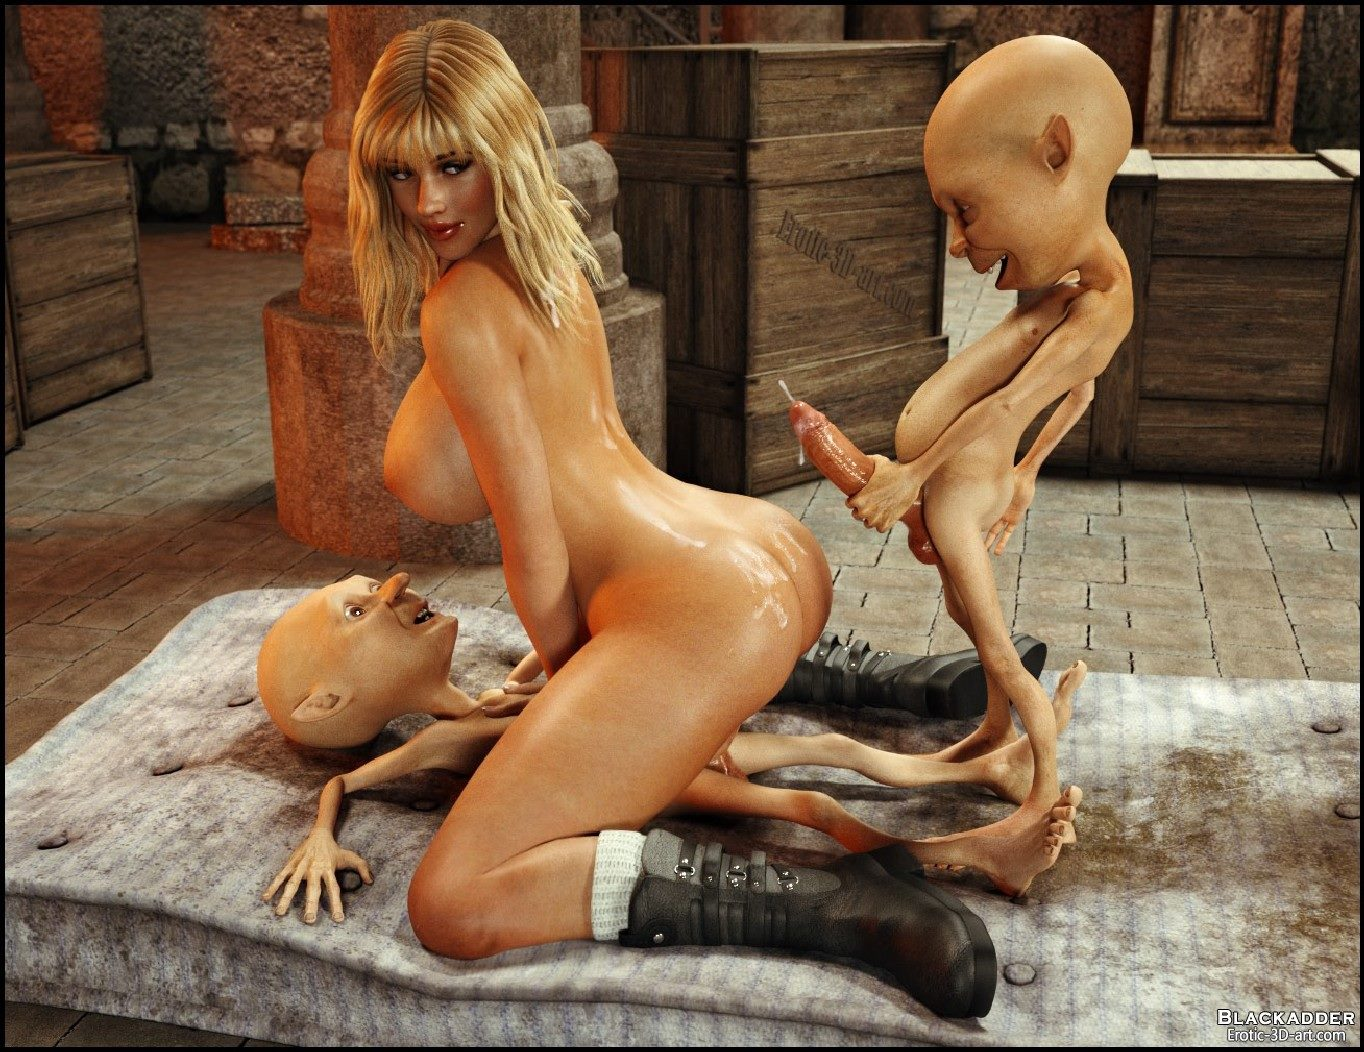 Foto re4: ashley bikini mod fucked videos